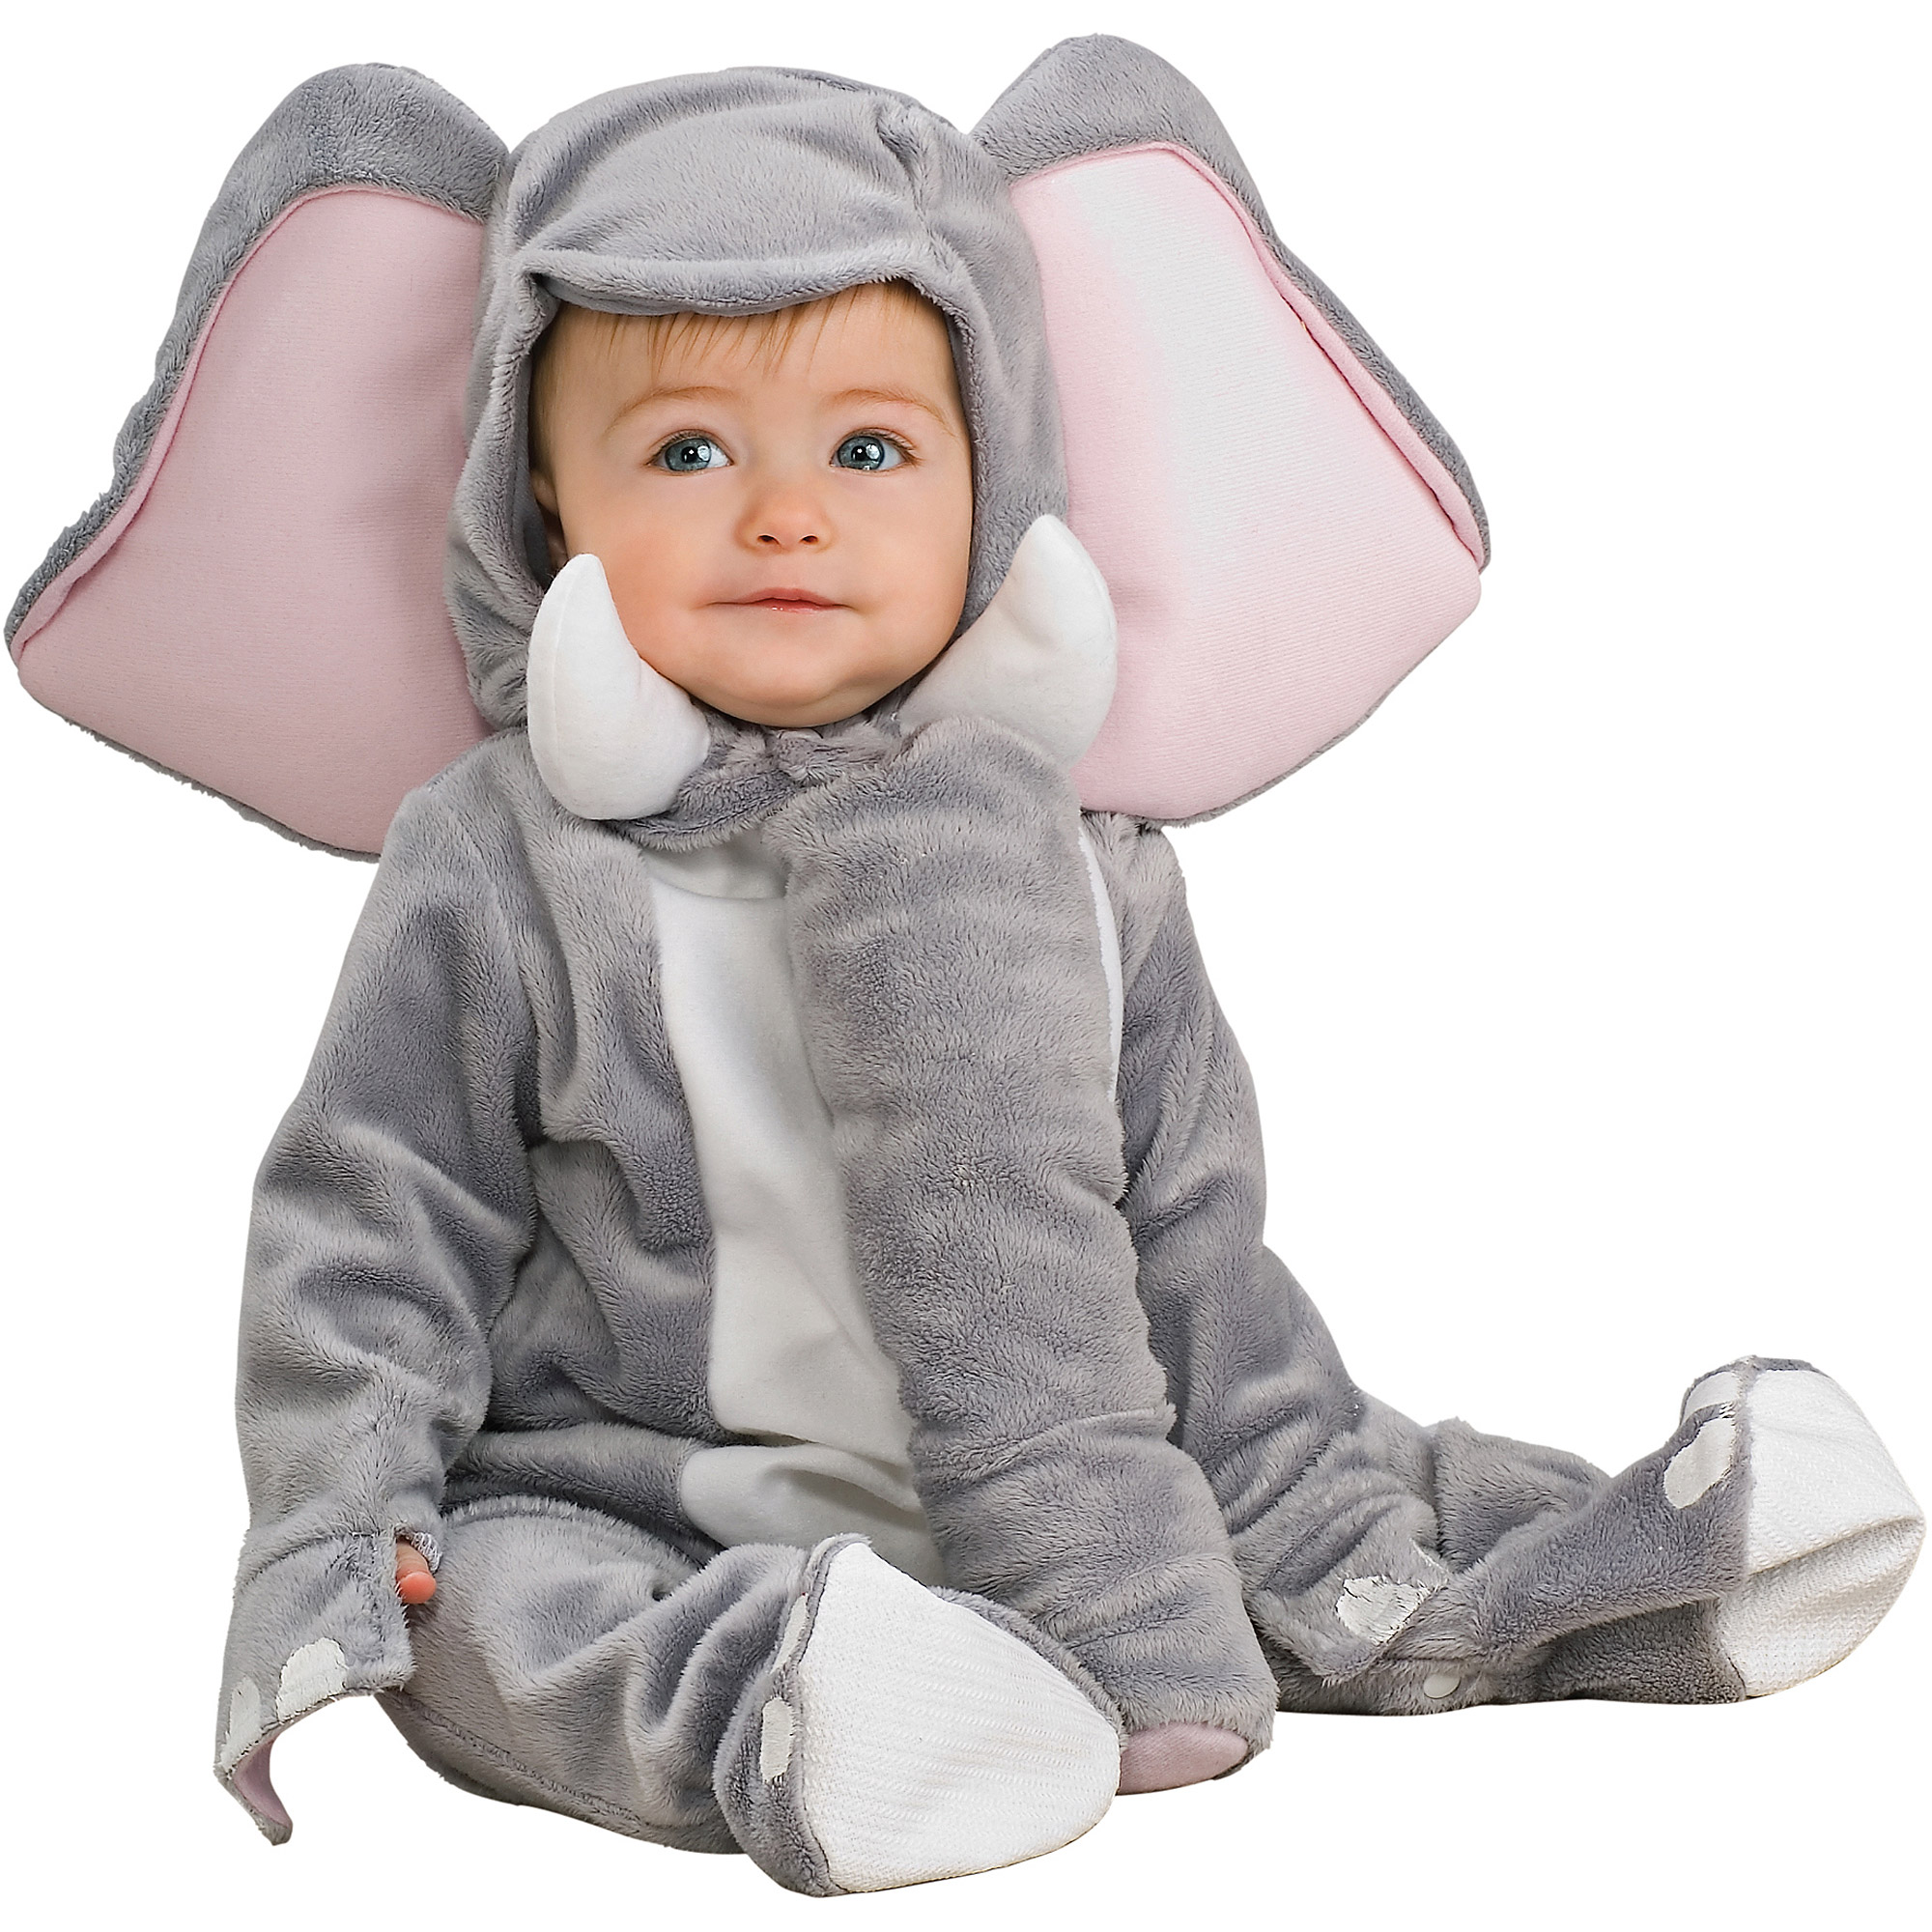 elephant infant jumpsuit halloween costume walmartcom - Walmart Halloween Costumes For Baby